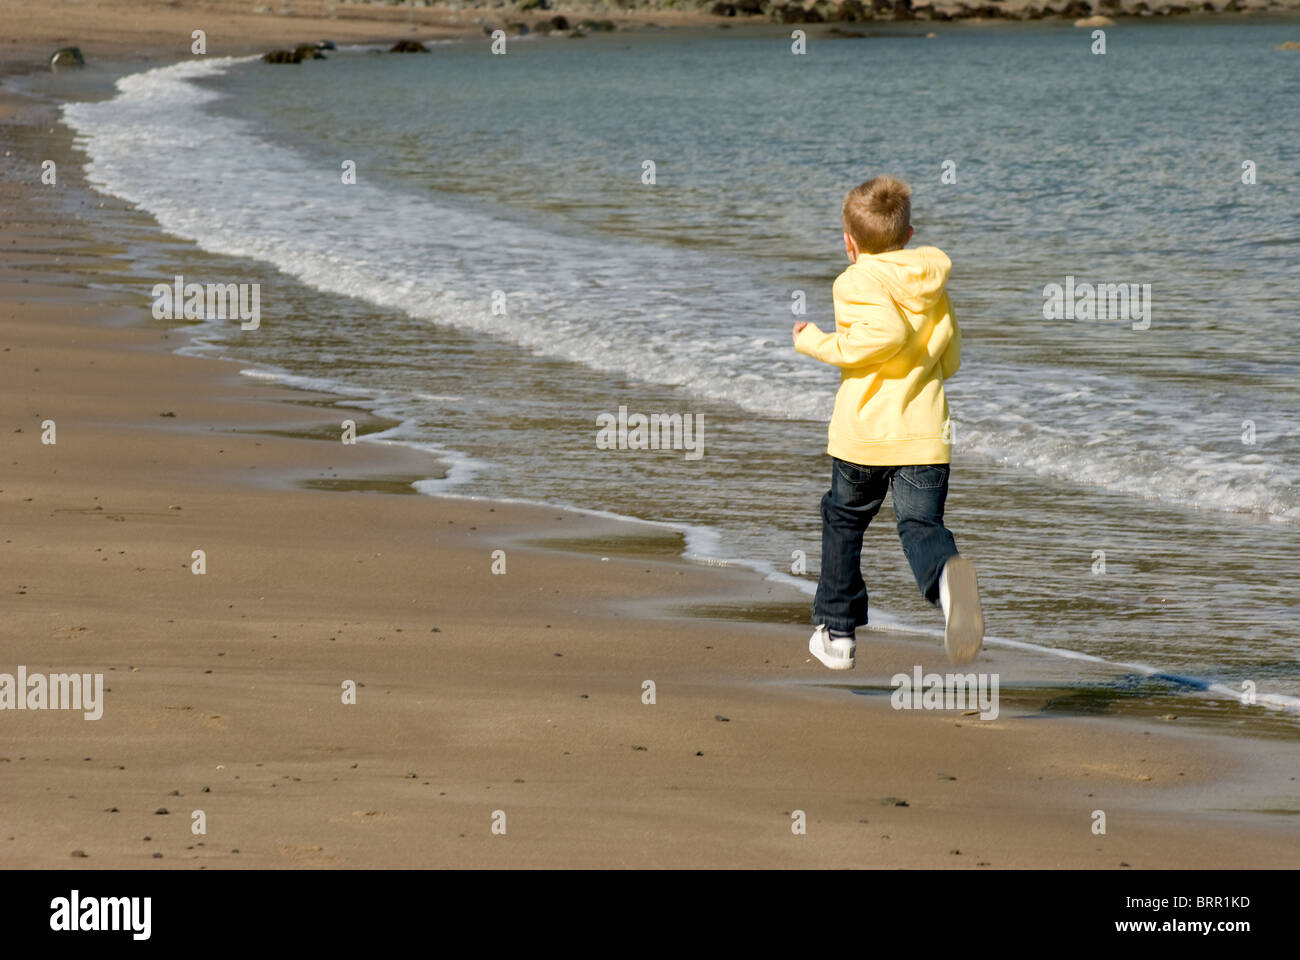 Boy running on the beach at Newquay, West Wales. - Stock Image